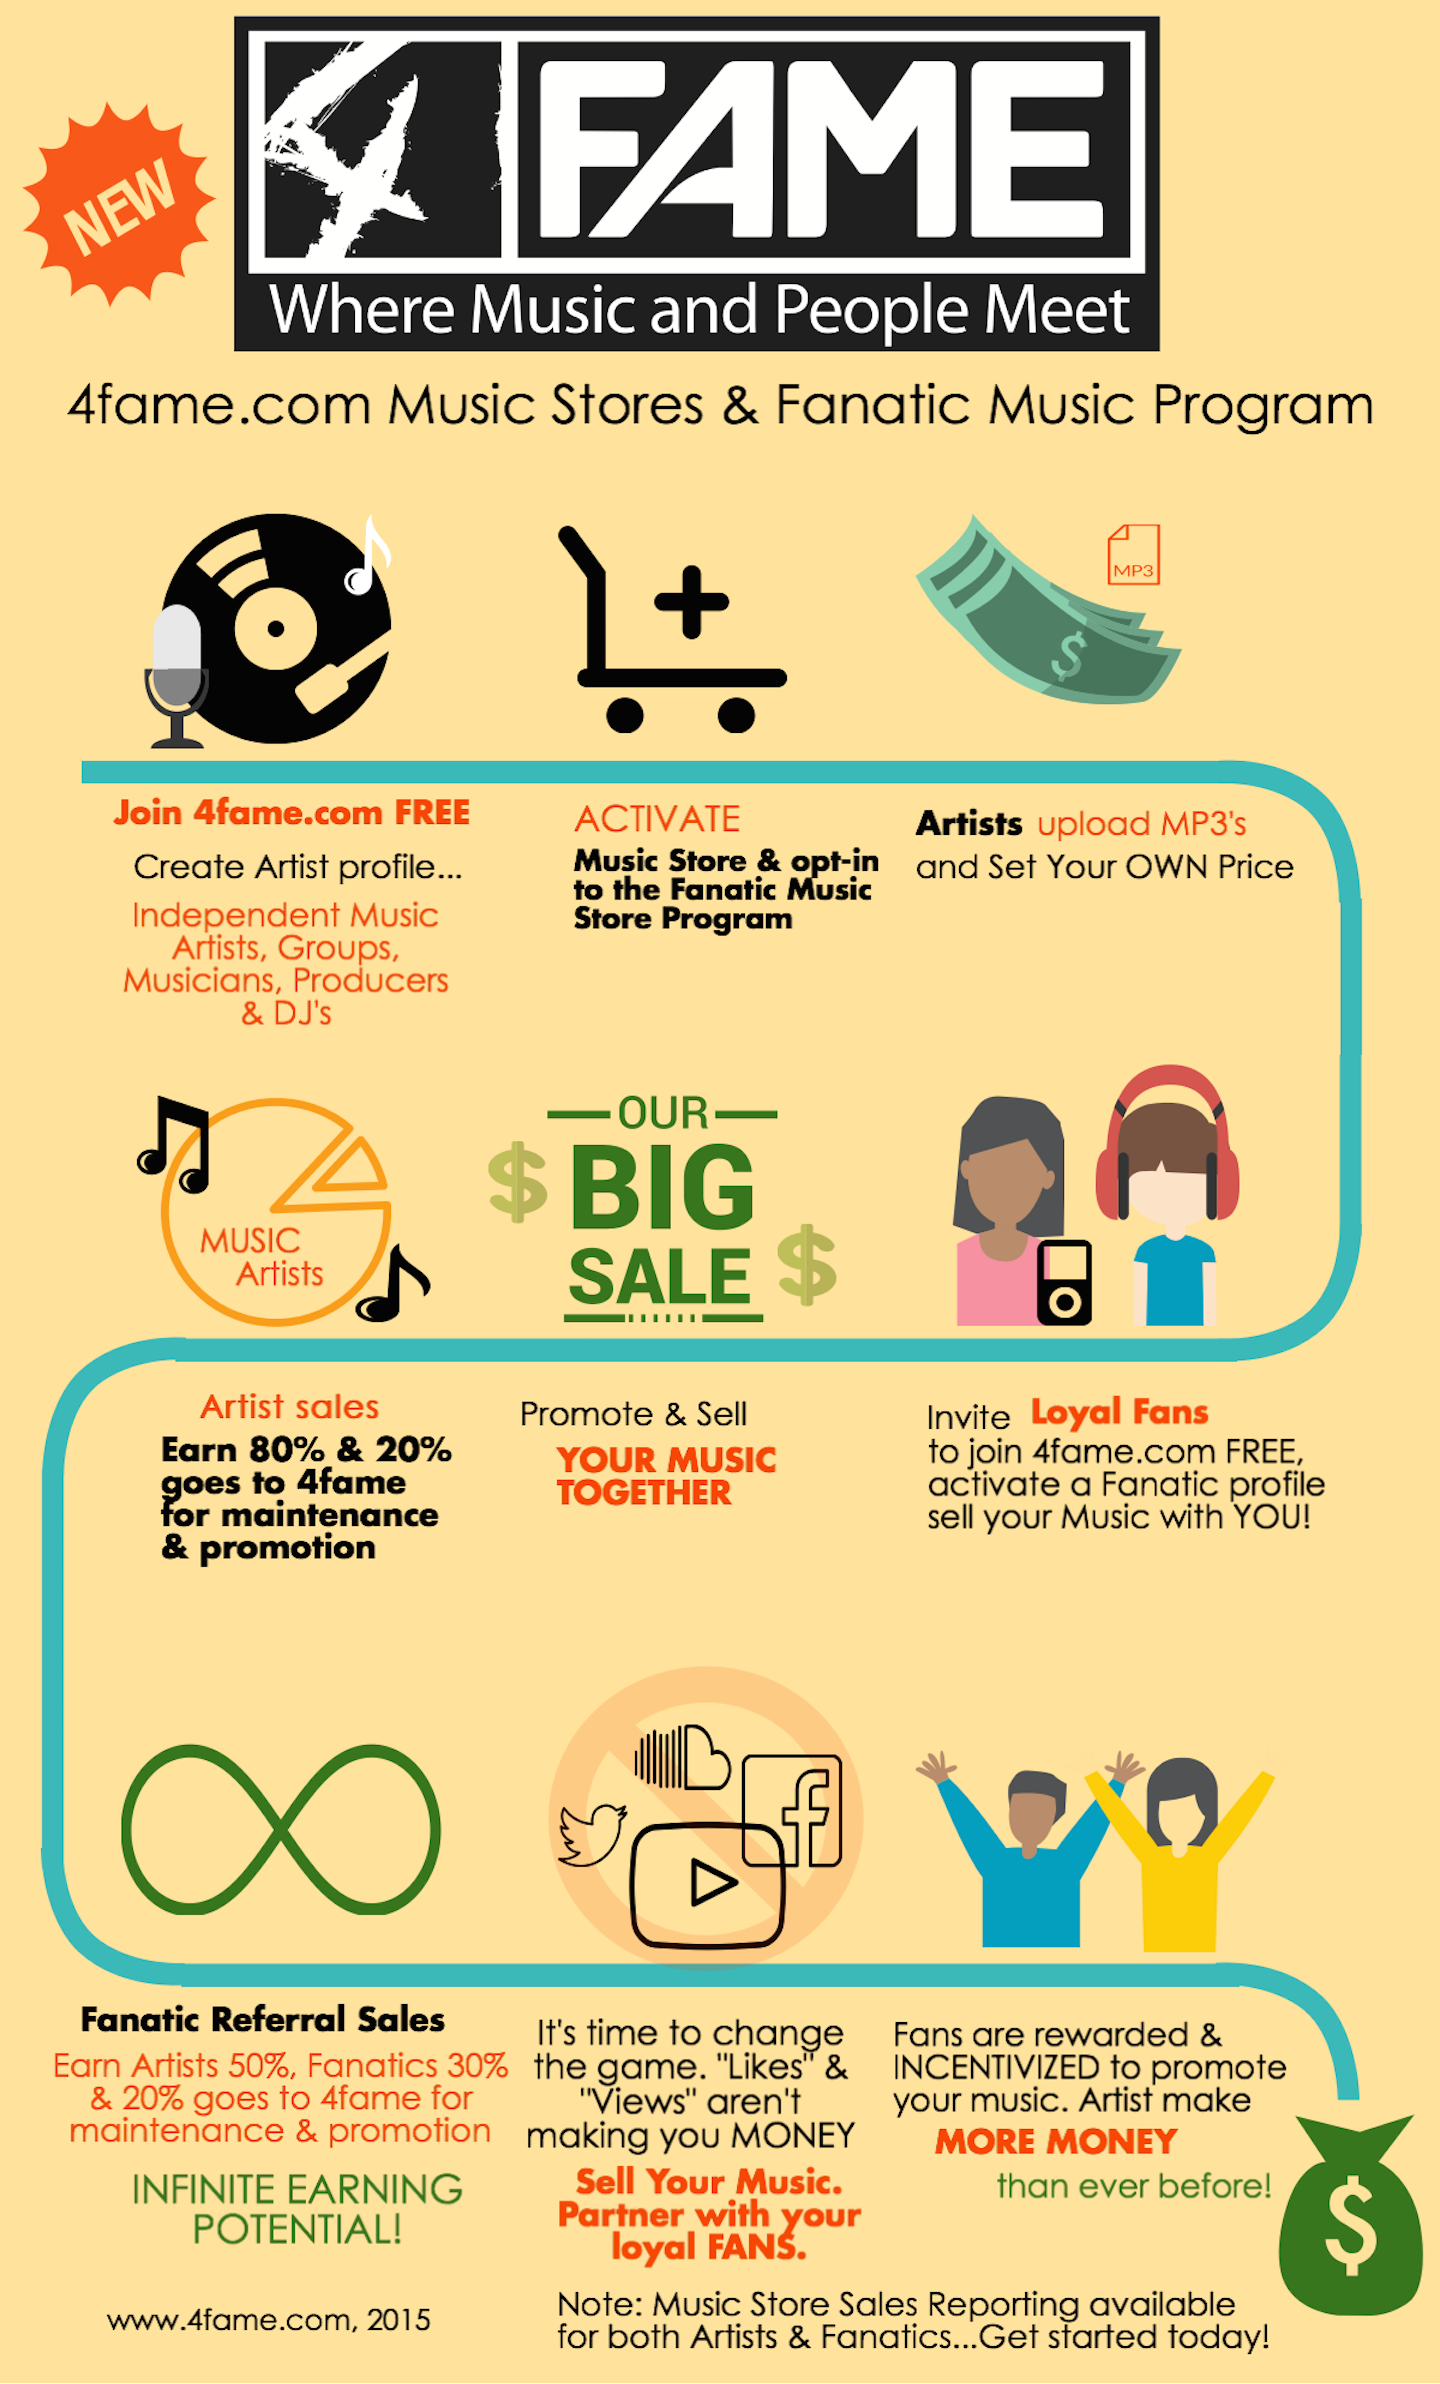 4fame.com Music Stores and Fanatic Music Program infographic